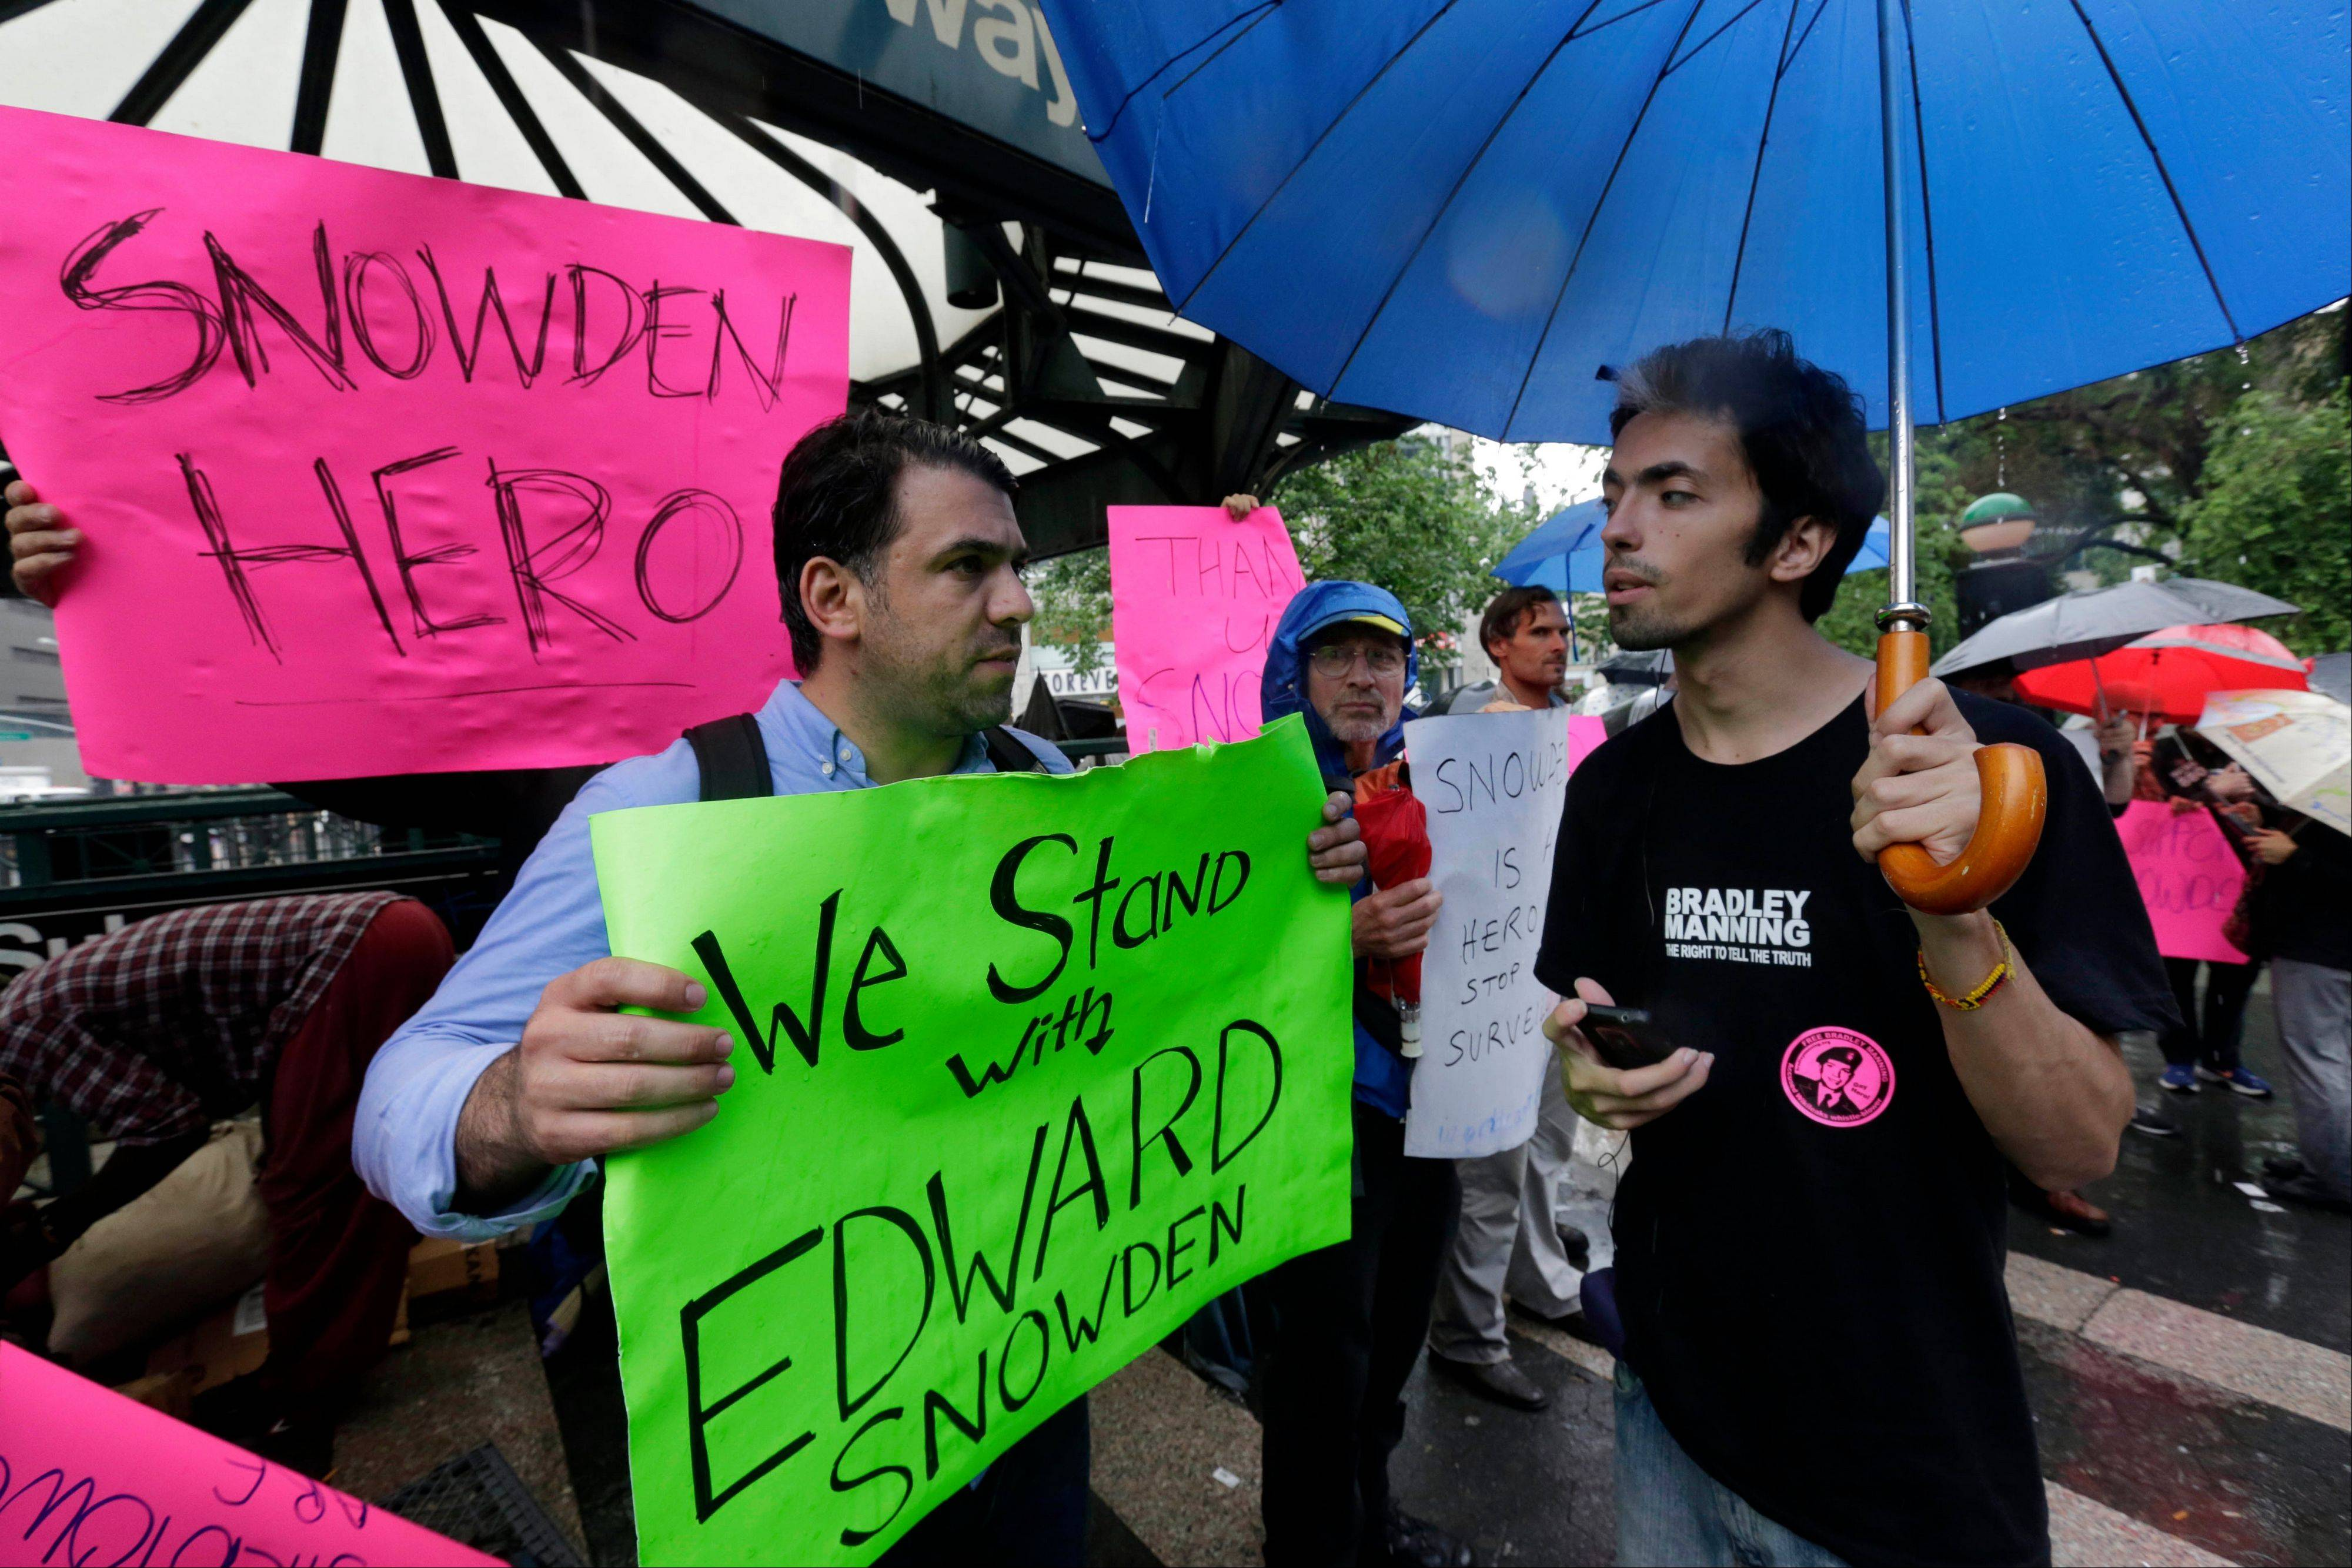 Demonstrators hold signs supporting Edward Snowden in New York�s Union Square Park Monday. Snowden, who says he worked as a contractor at the National Security Agency and the CIA, gave classified documents to reporters, making public two sweeping U.S. surveillance programs and touching off a national debate on privacy versus security.